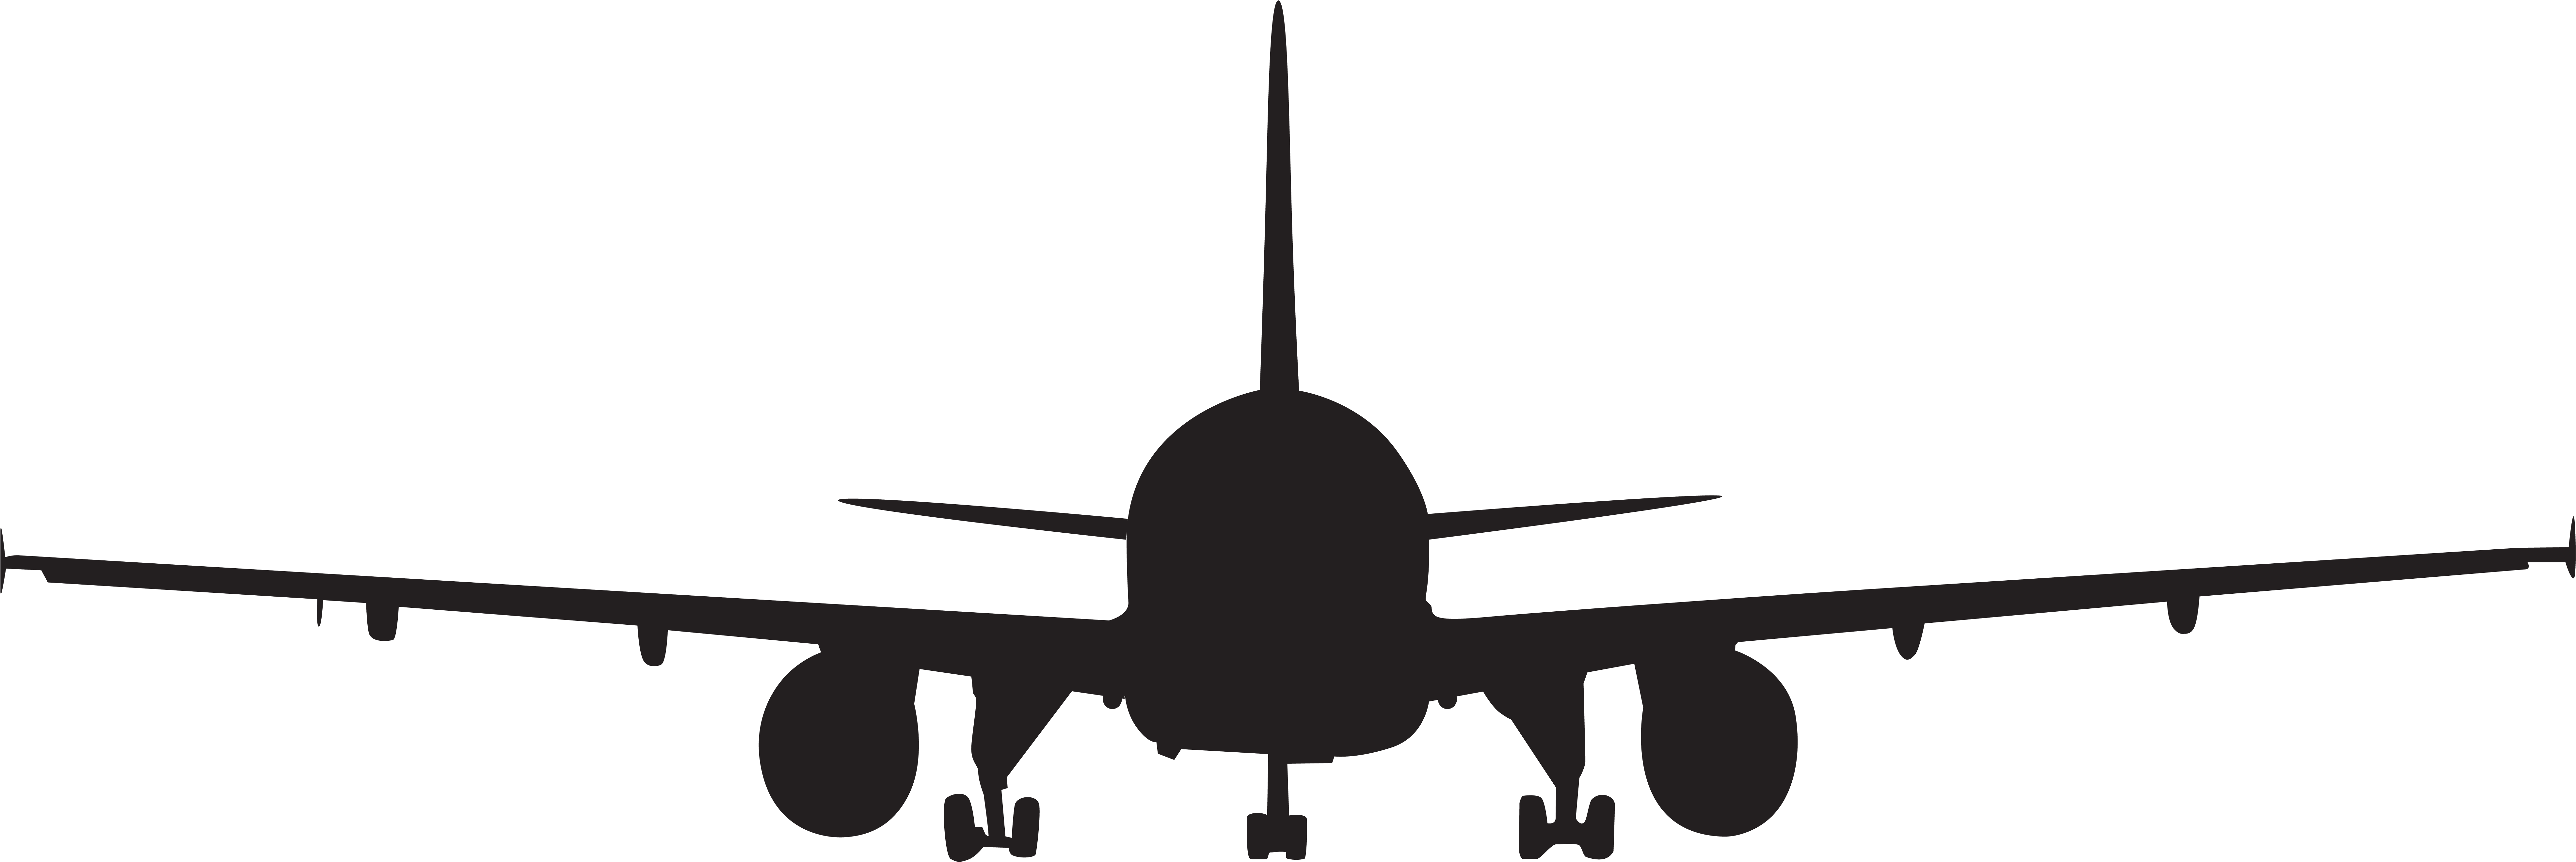 Airplane silhouette clip art. Clipart plane front